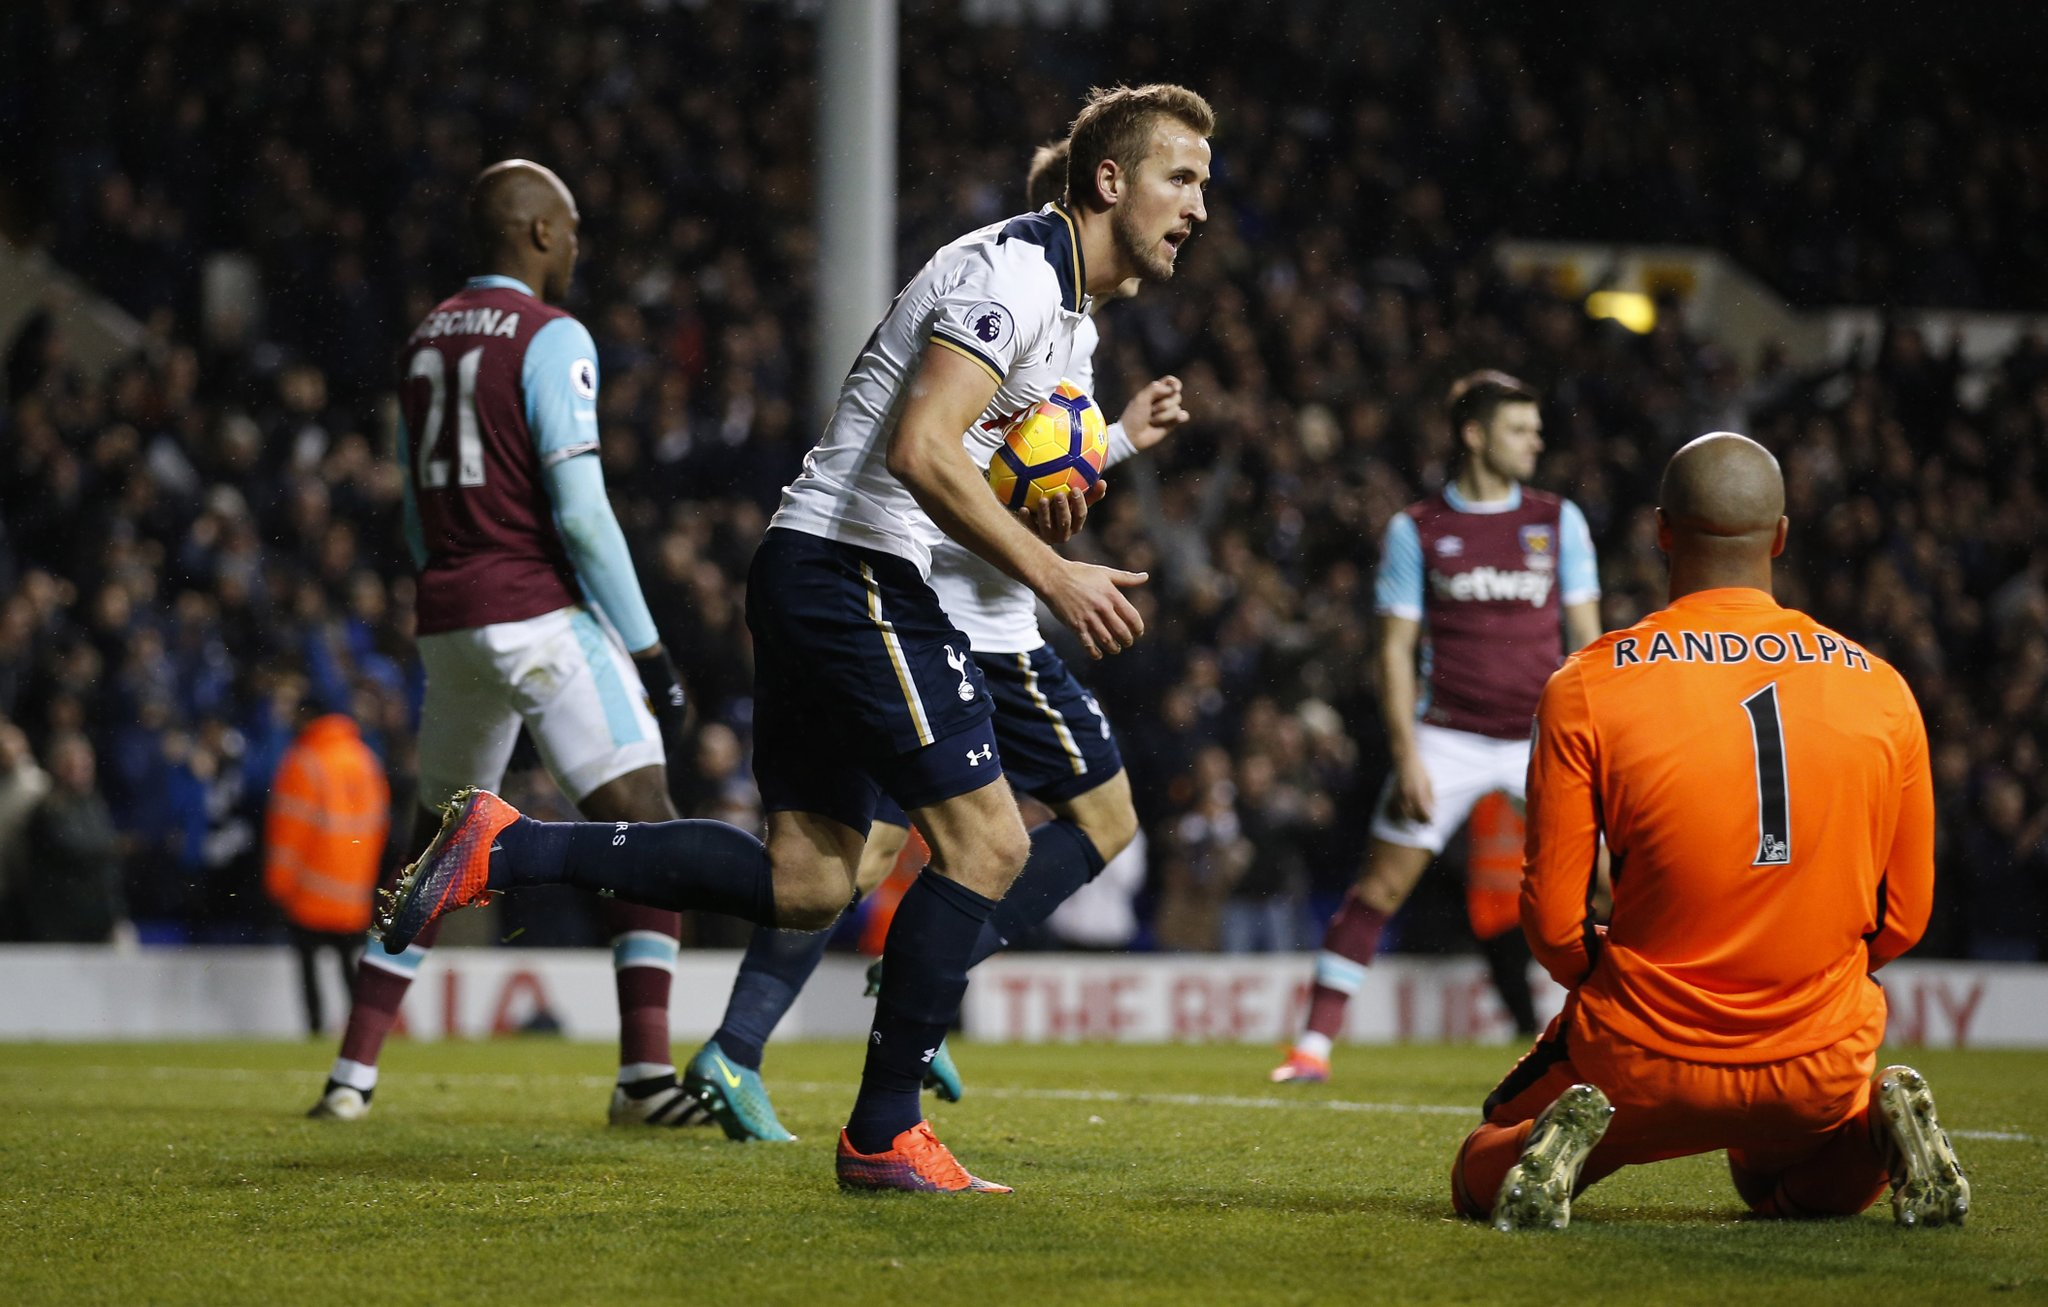 Kane Fires Late Brace As Tottenham Outscore West Ham